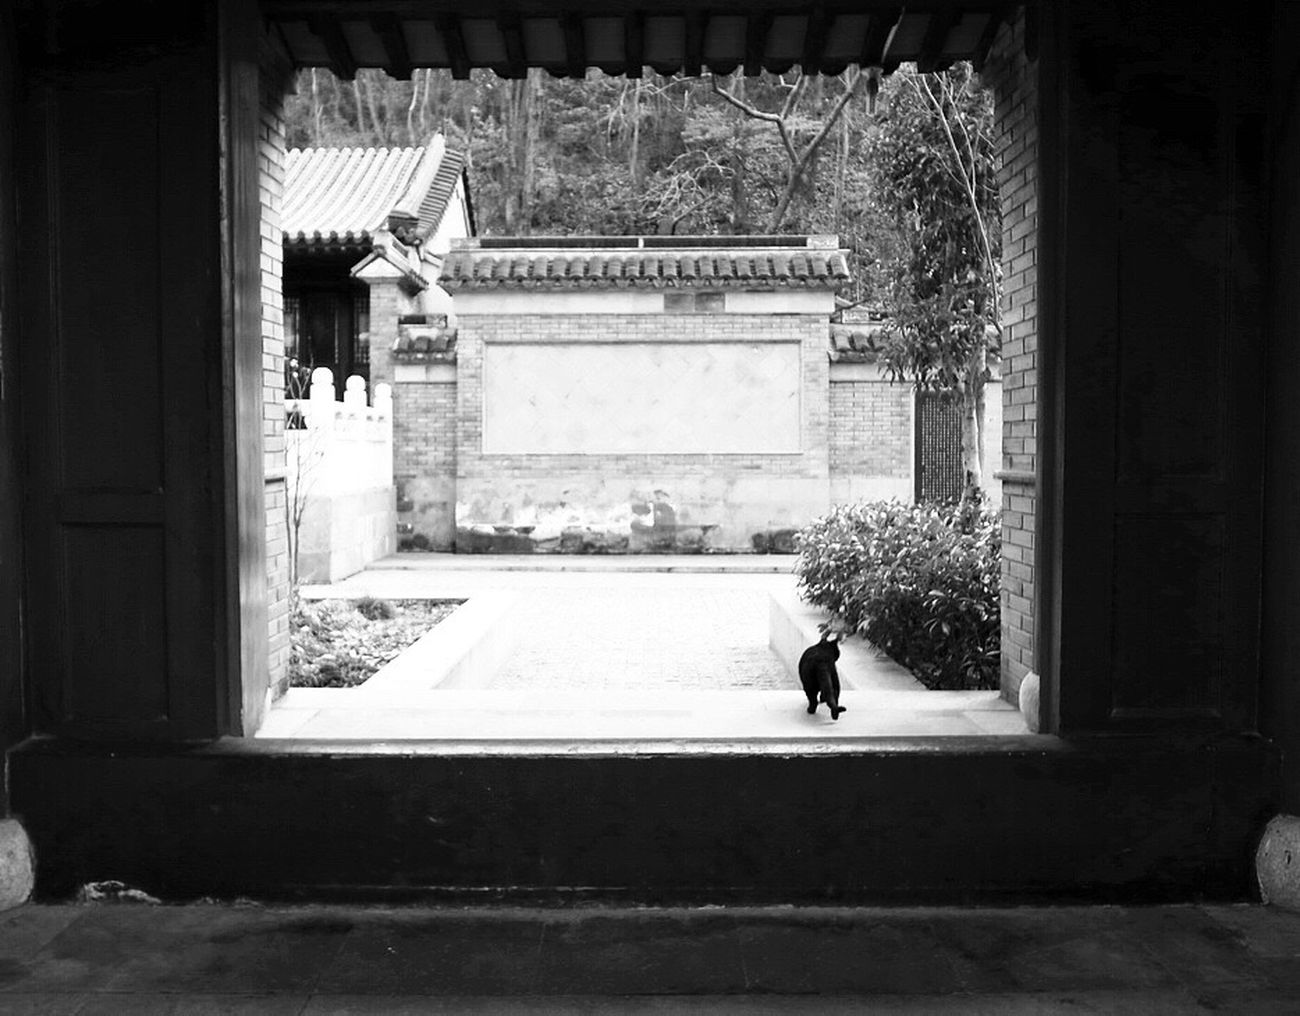 Qixia Temple Chinesetemple Door Black & White Taking Photos Nanjing China